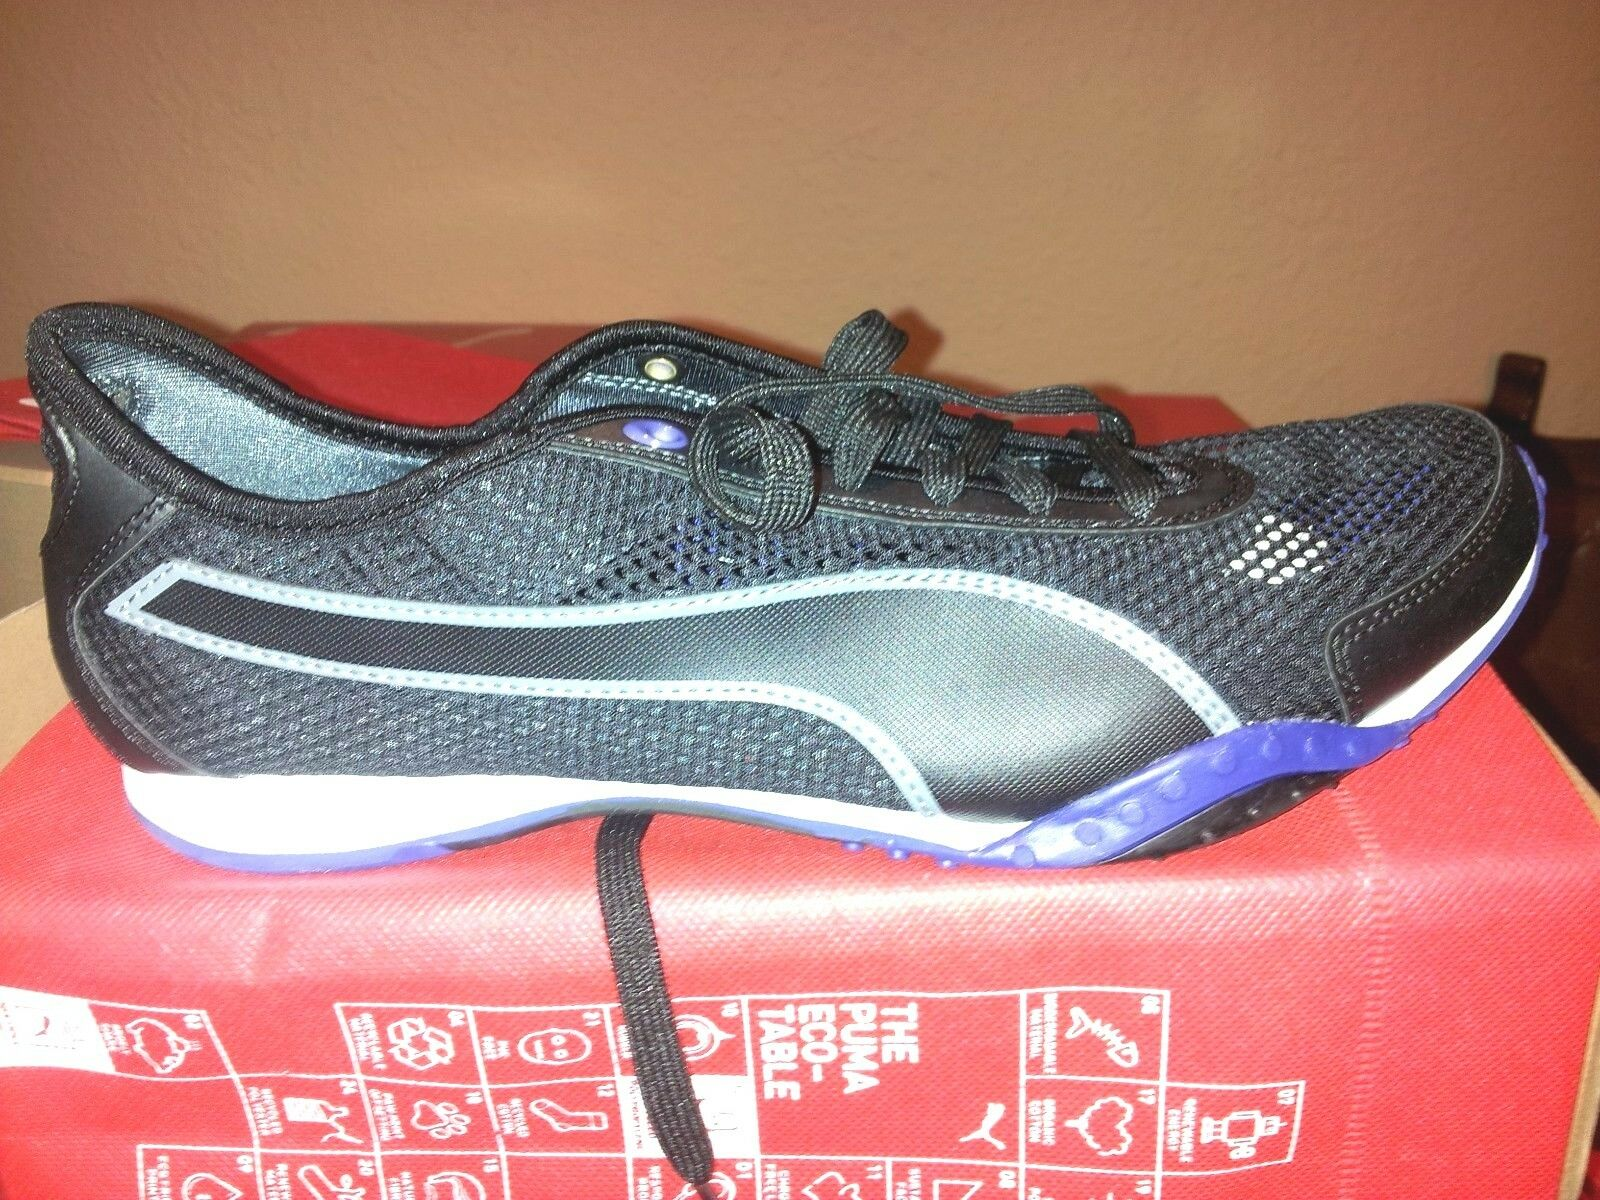 PUMA Asha Cutout Women's Running shoes Black Clematis bluee NIB 186502 Size 9